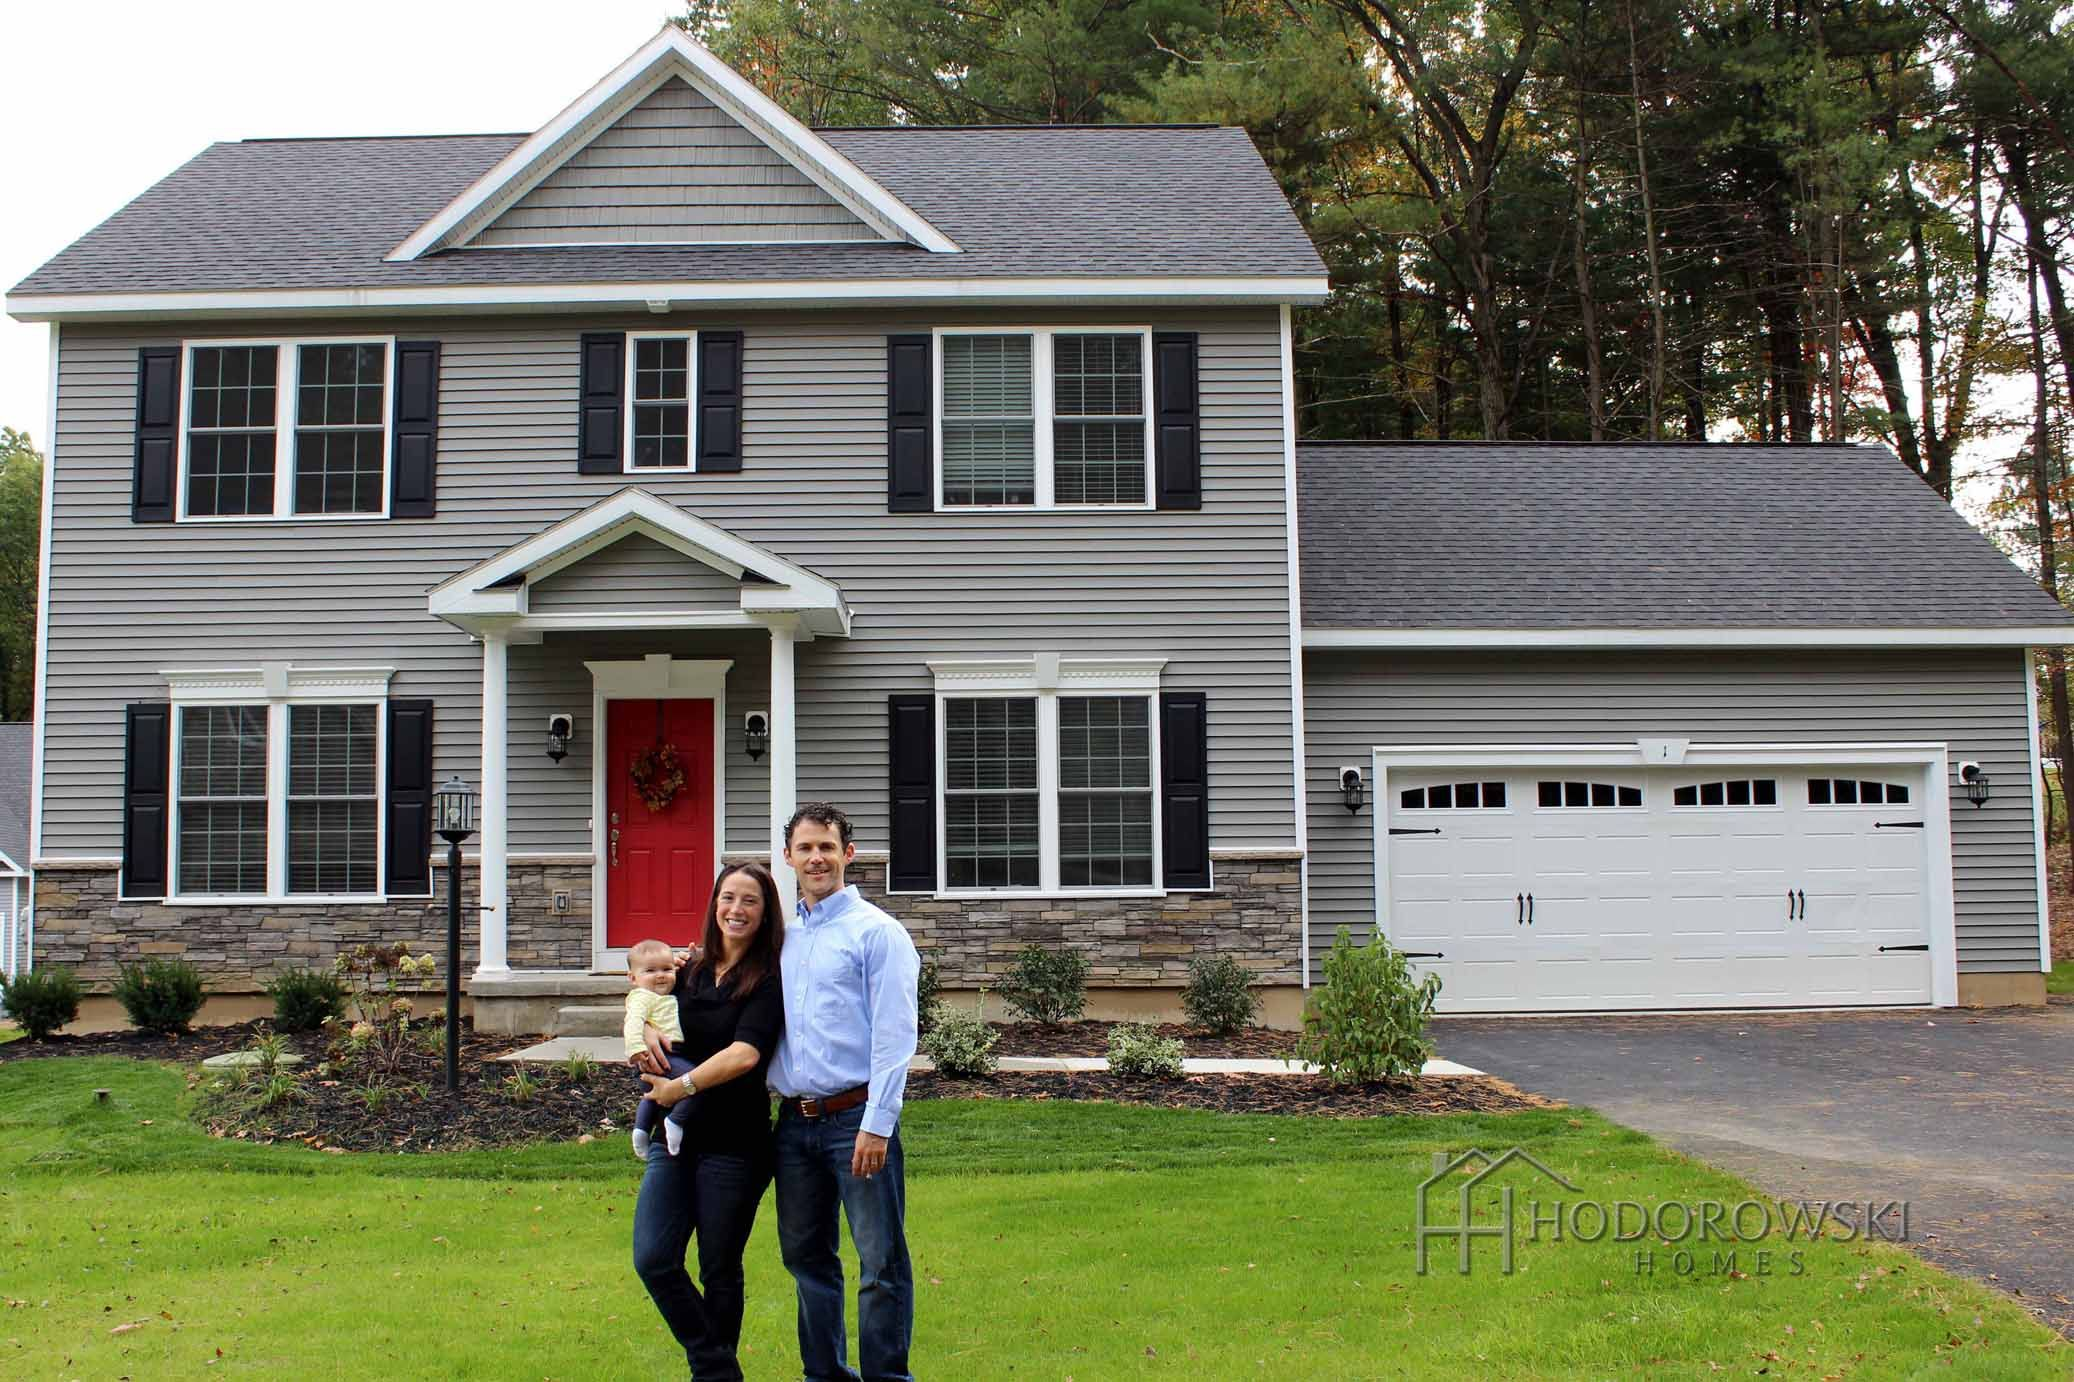 These Lovely Homeowners Chose Quot Keystone Quot Siding And Shakes